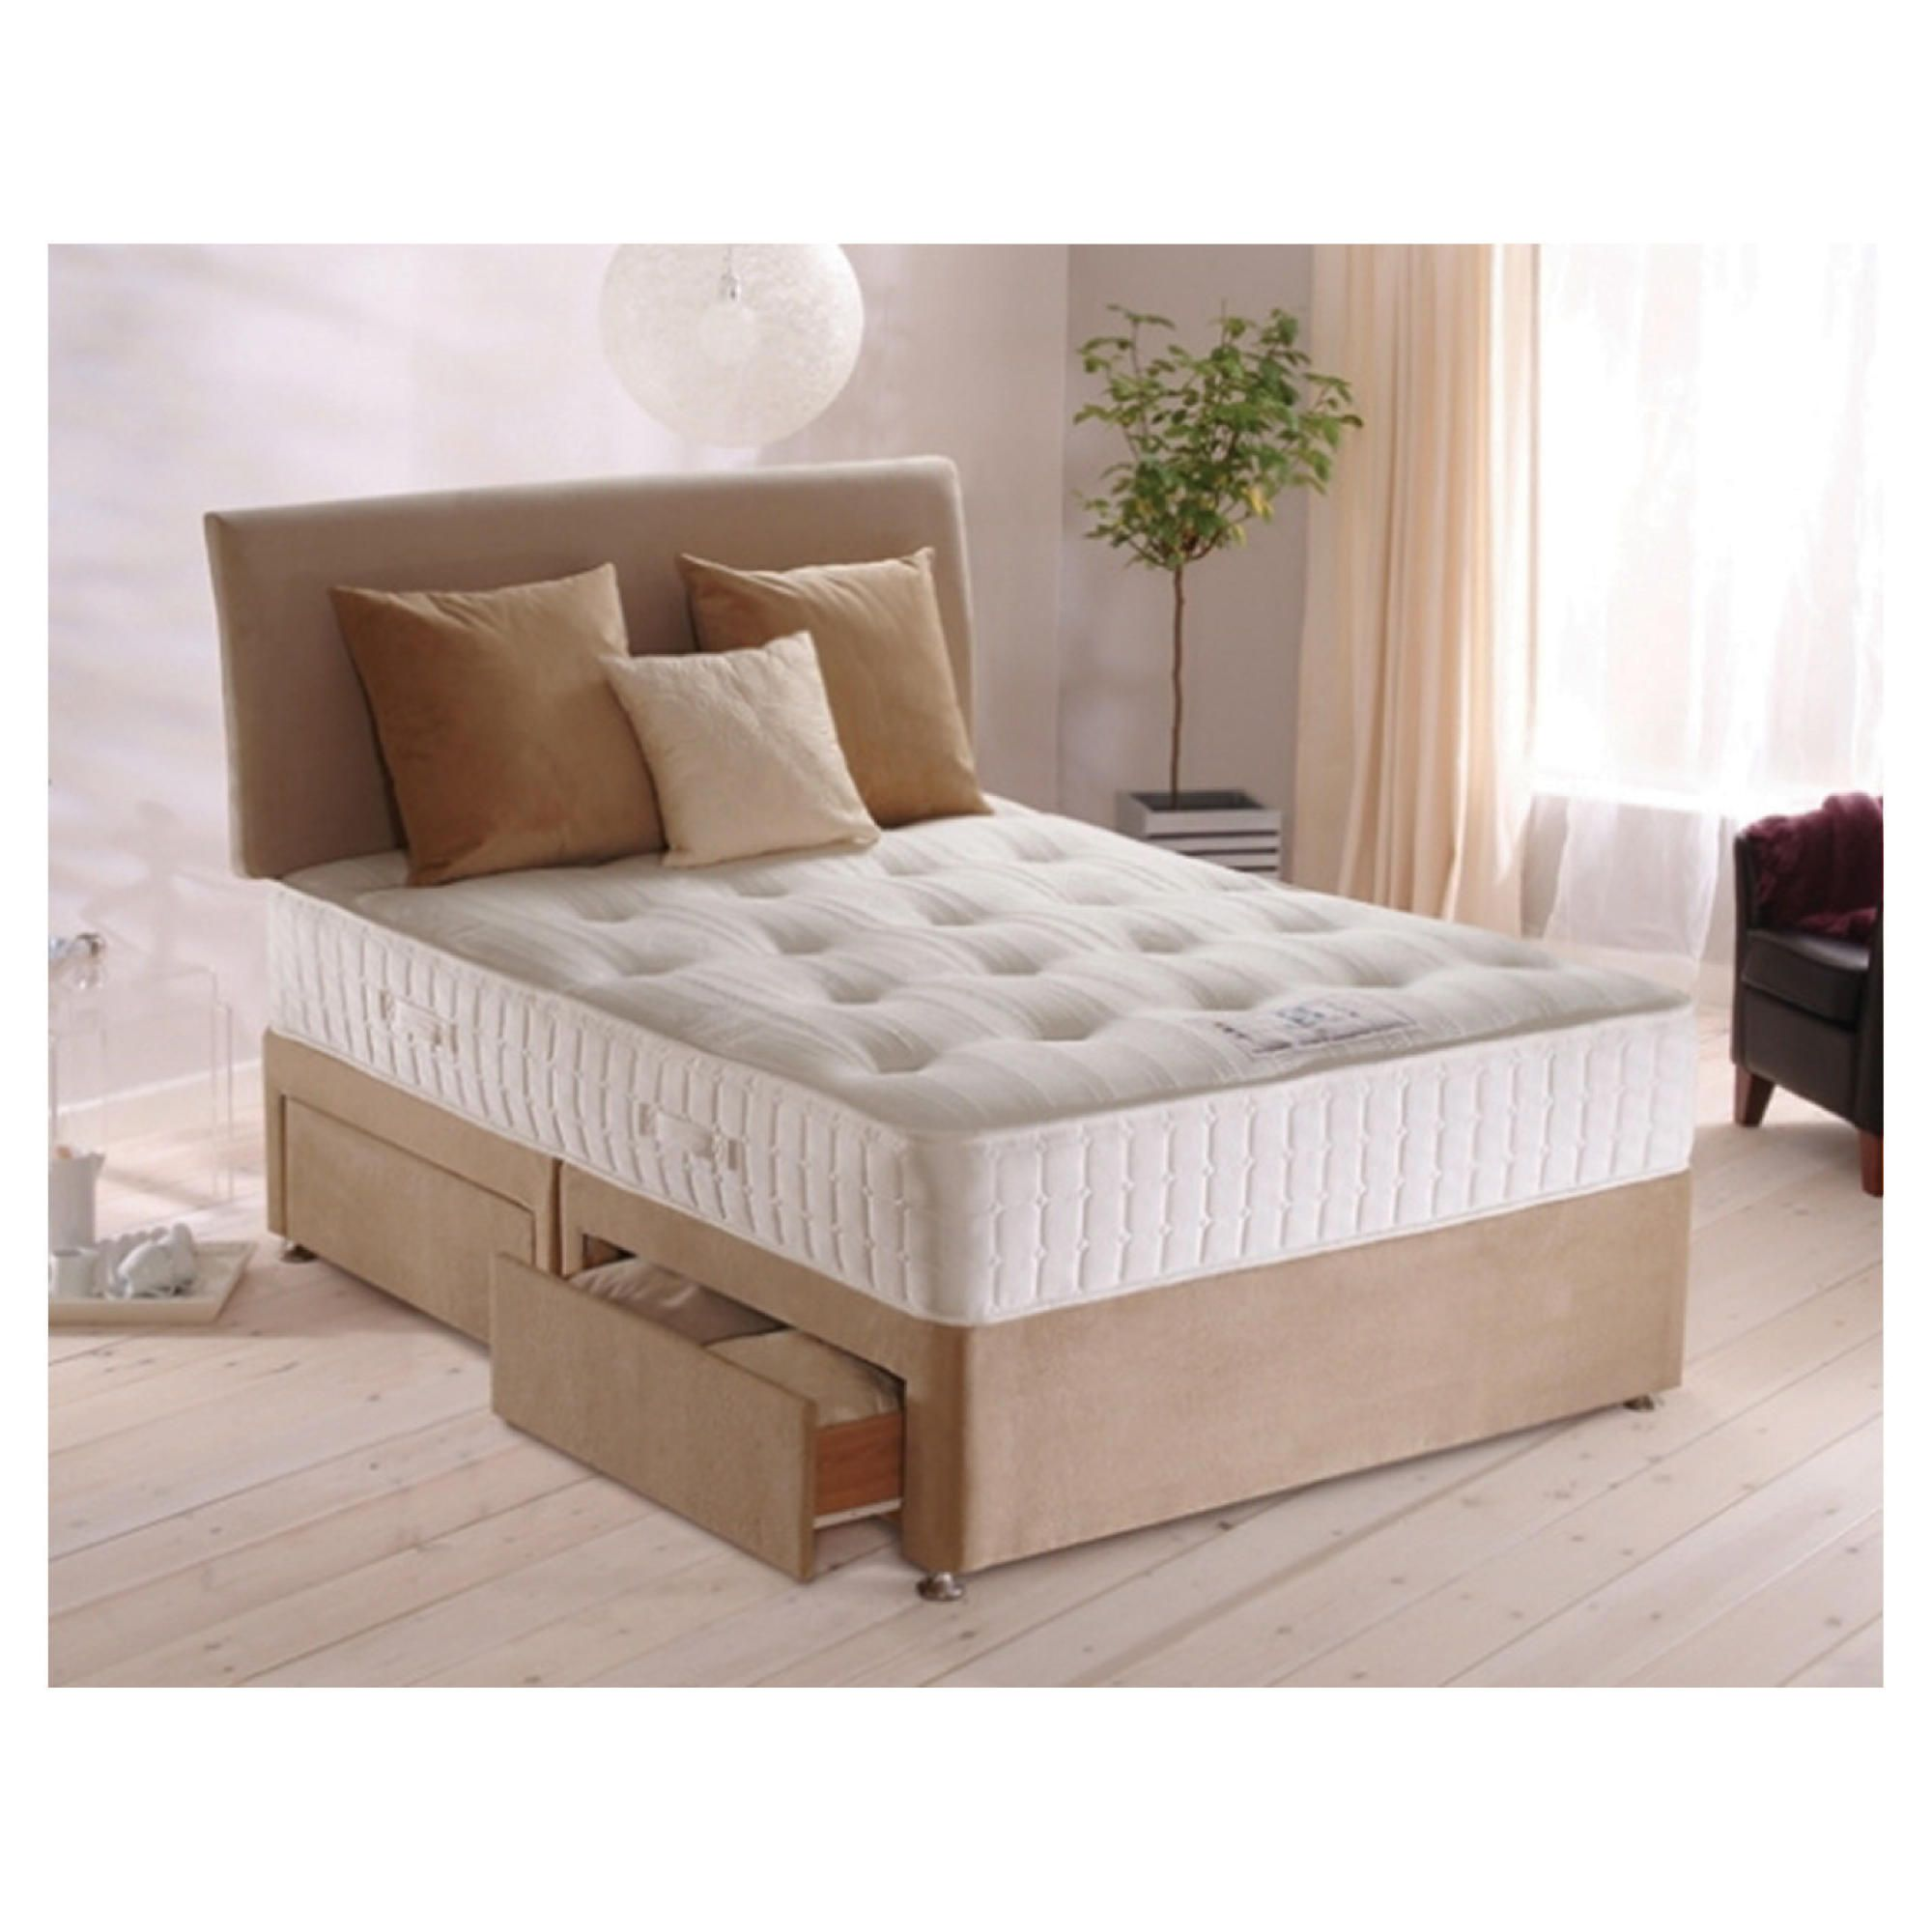 Sealy Purity Pocket Ortho Single Non Storage Divan Bed at Tescos Direct